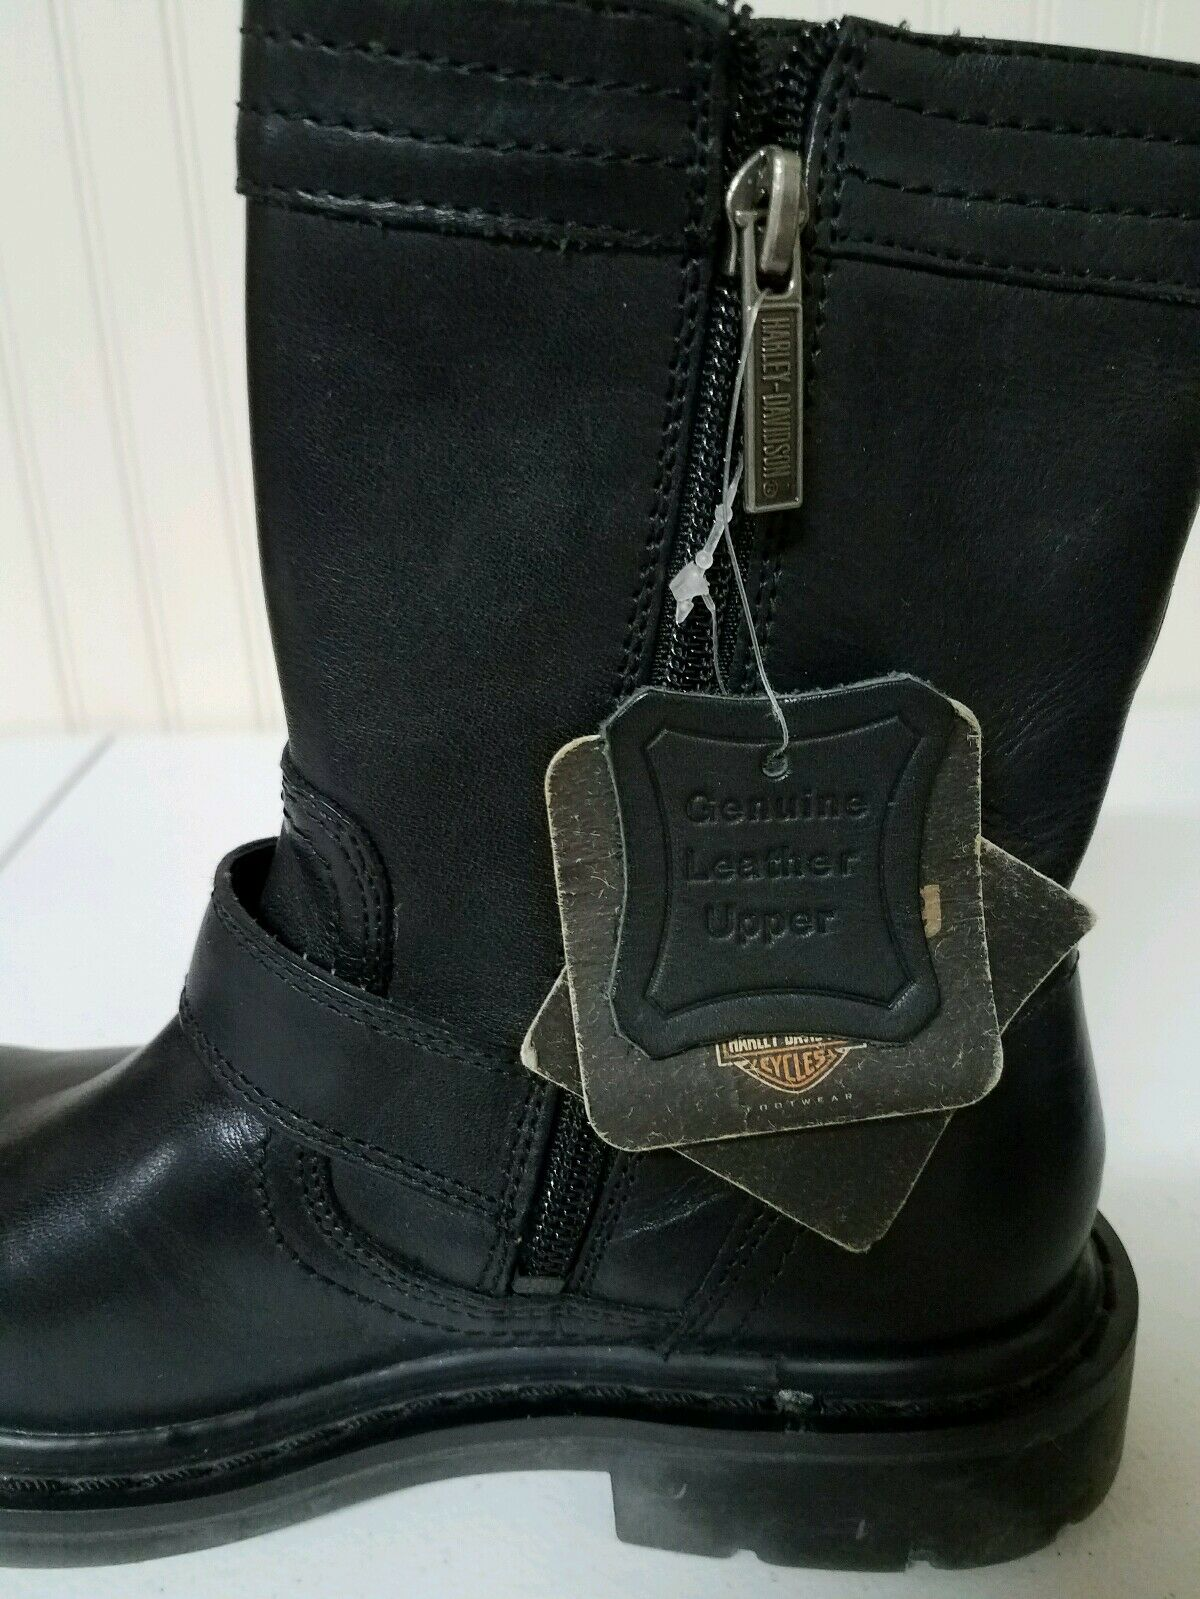 13 Harley Davidson boots, size 5, black black black leather, ankle length a77e83